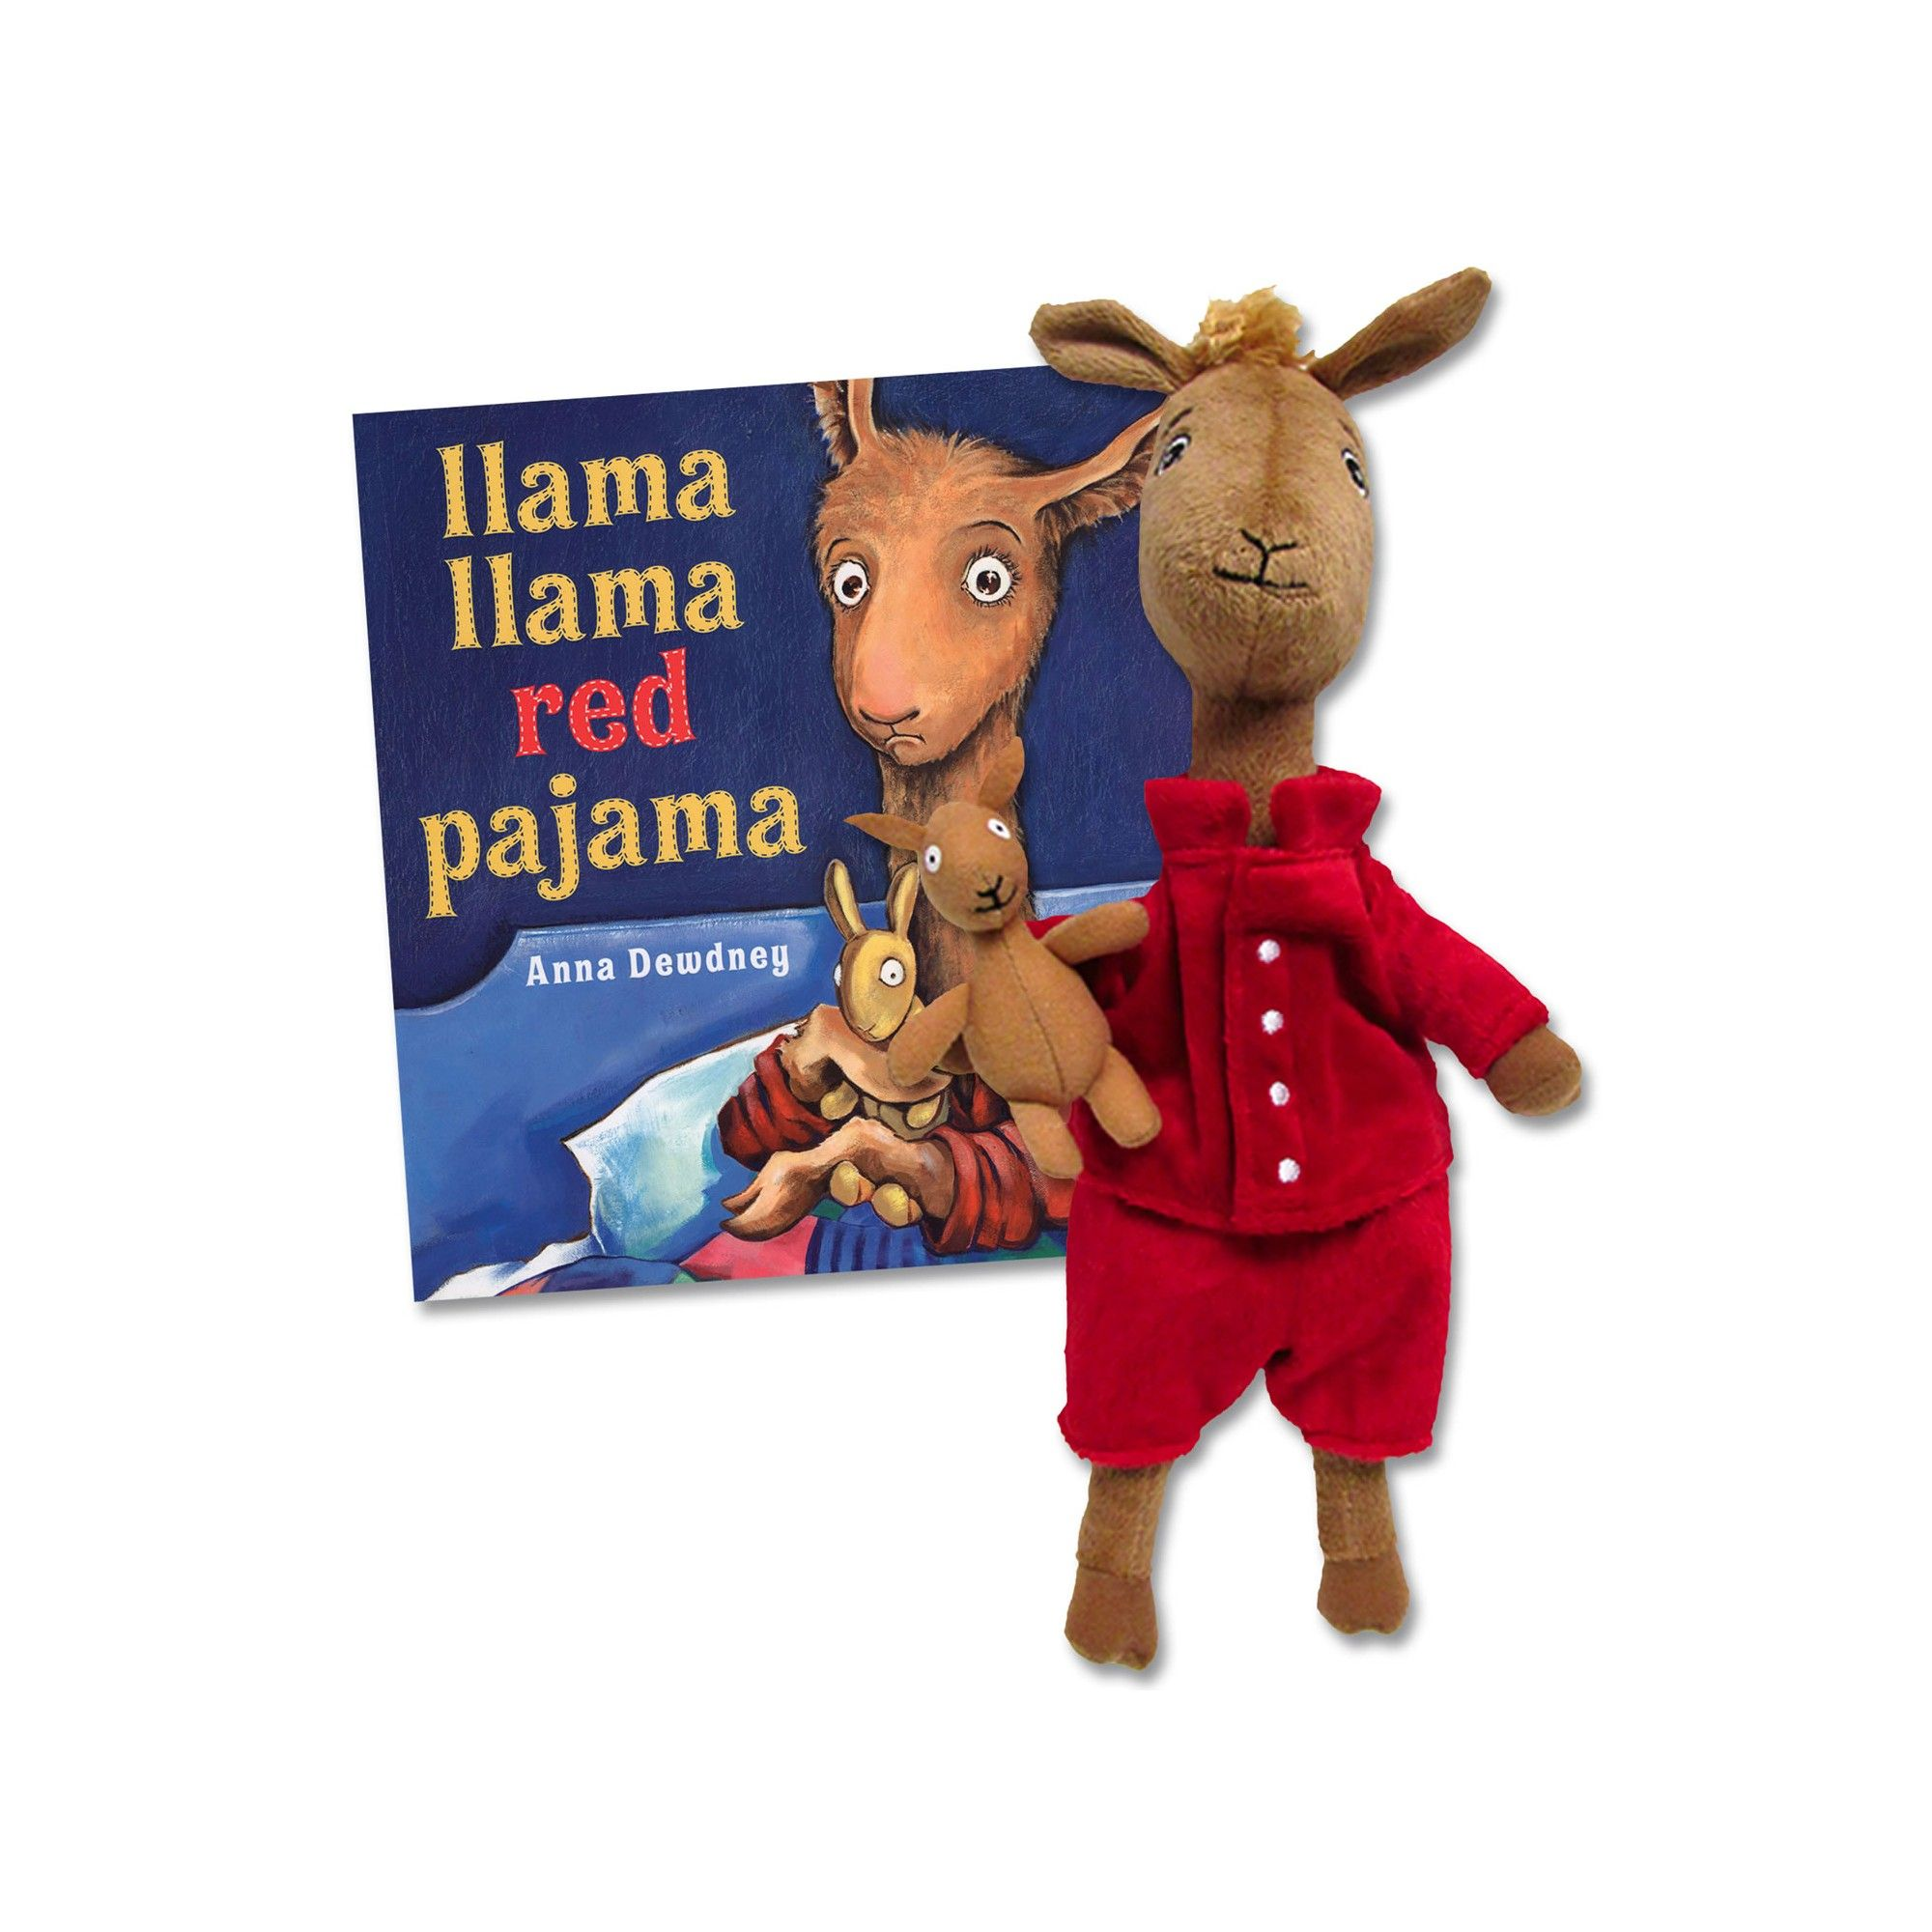 Kids Preferred Llama Llama Red Pajama Hardback Book